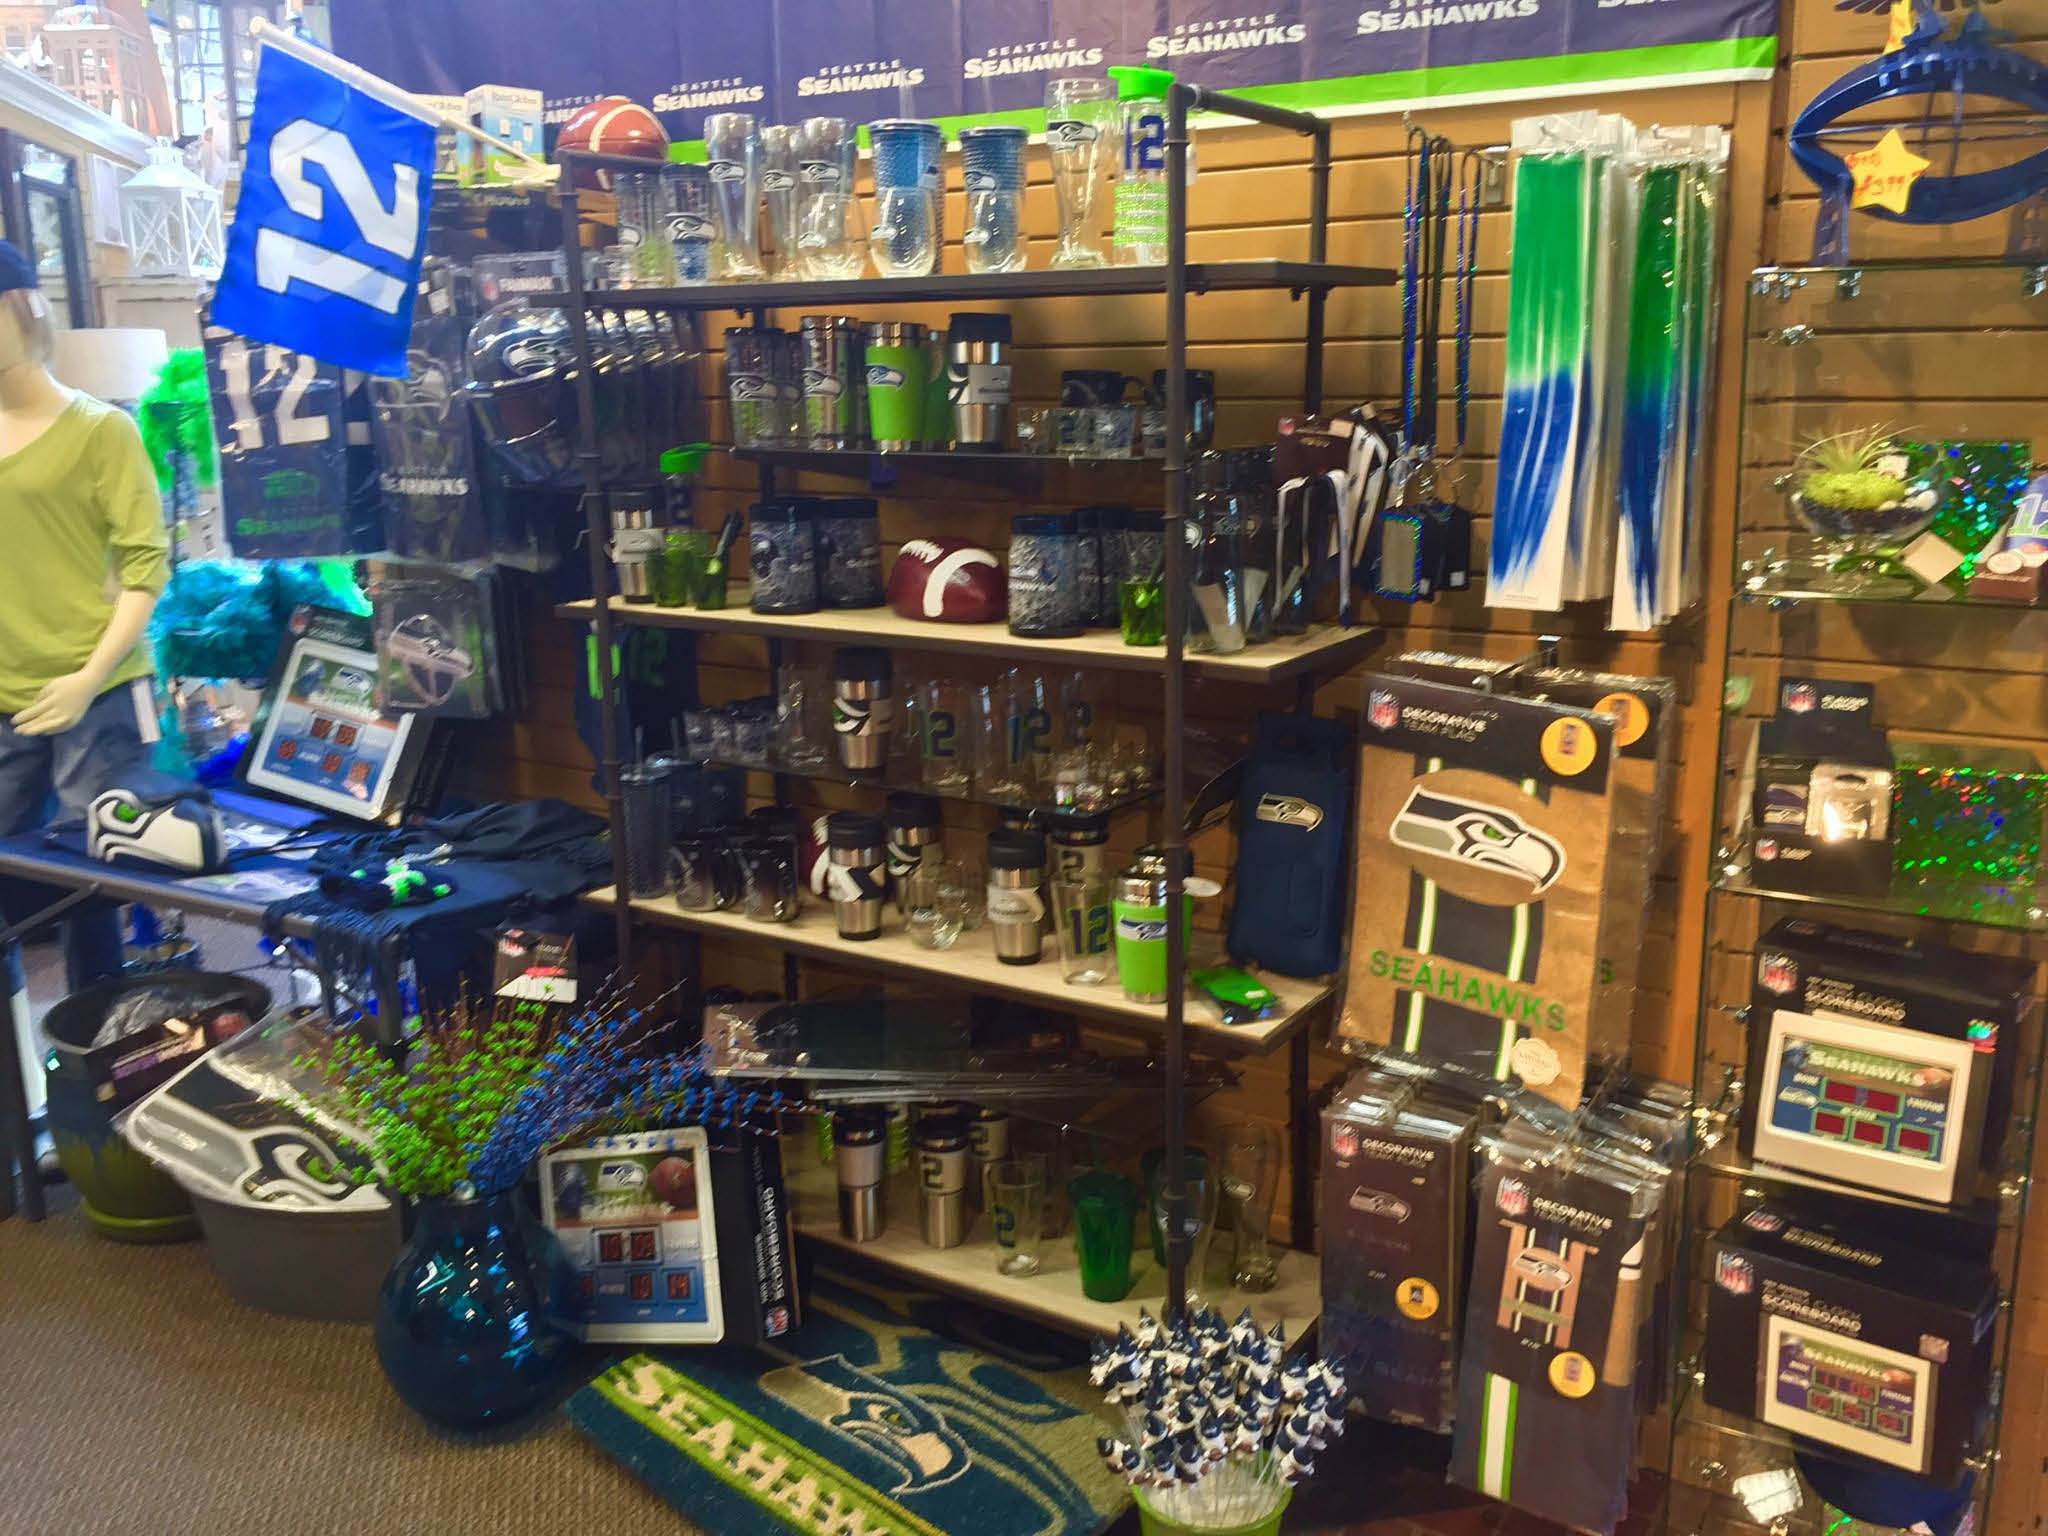 Wight's in Lynnwood has a huge selection of Seahawks gifts - Seahawks merchandise